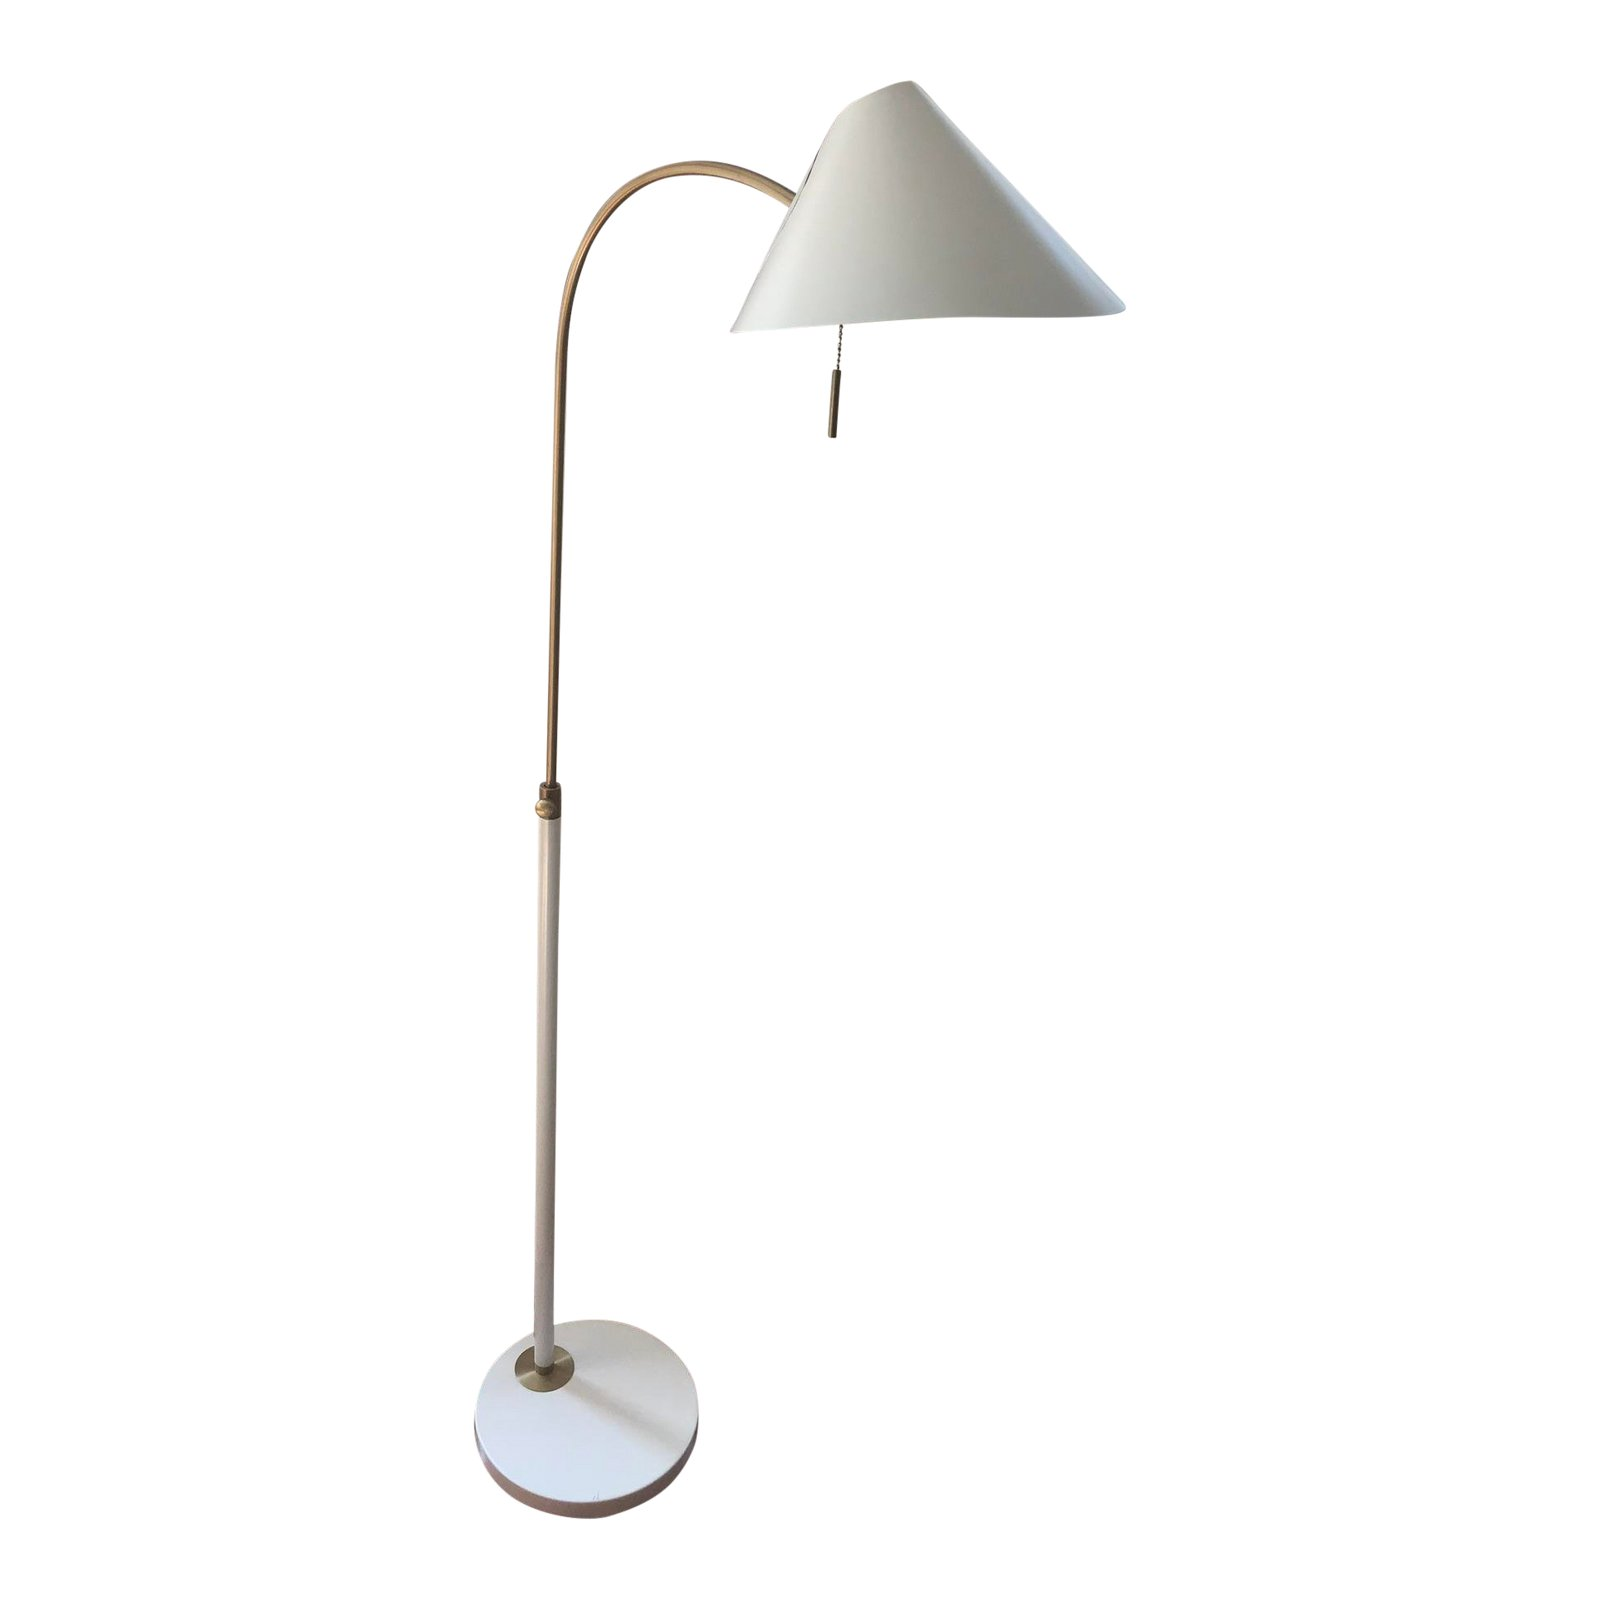 contemporary west elm floor lamp chairish accent spotlight table outdoor parasol solid wood coffee with drawers small retro side yuma furniture deep seating patio backsplash